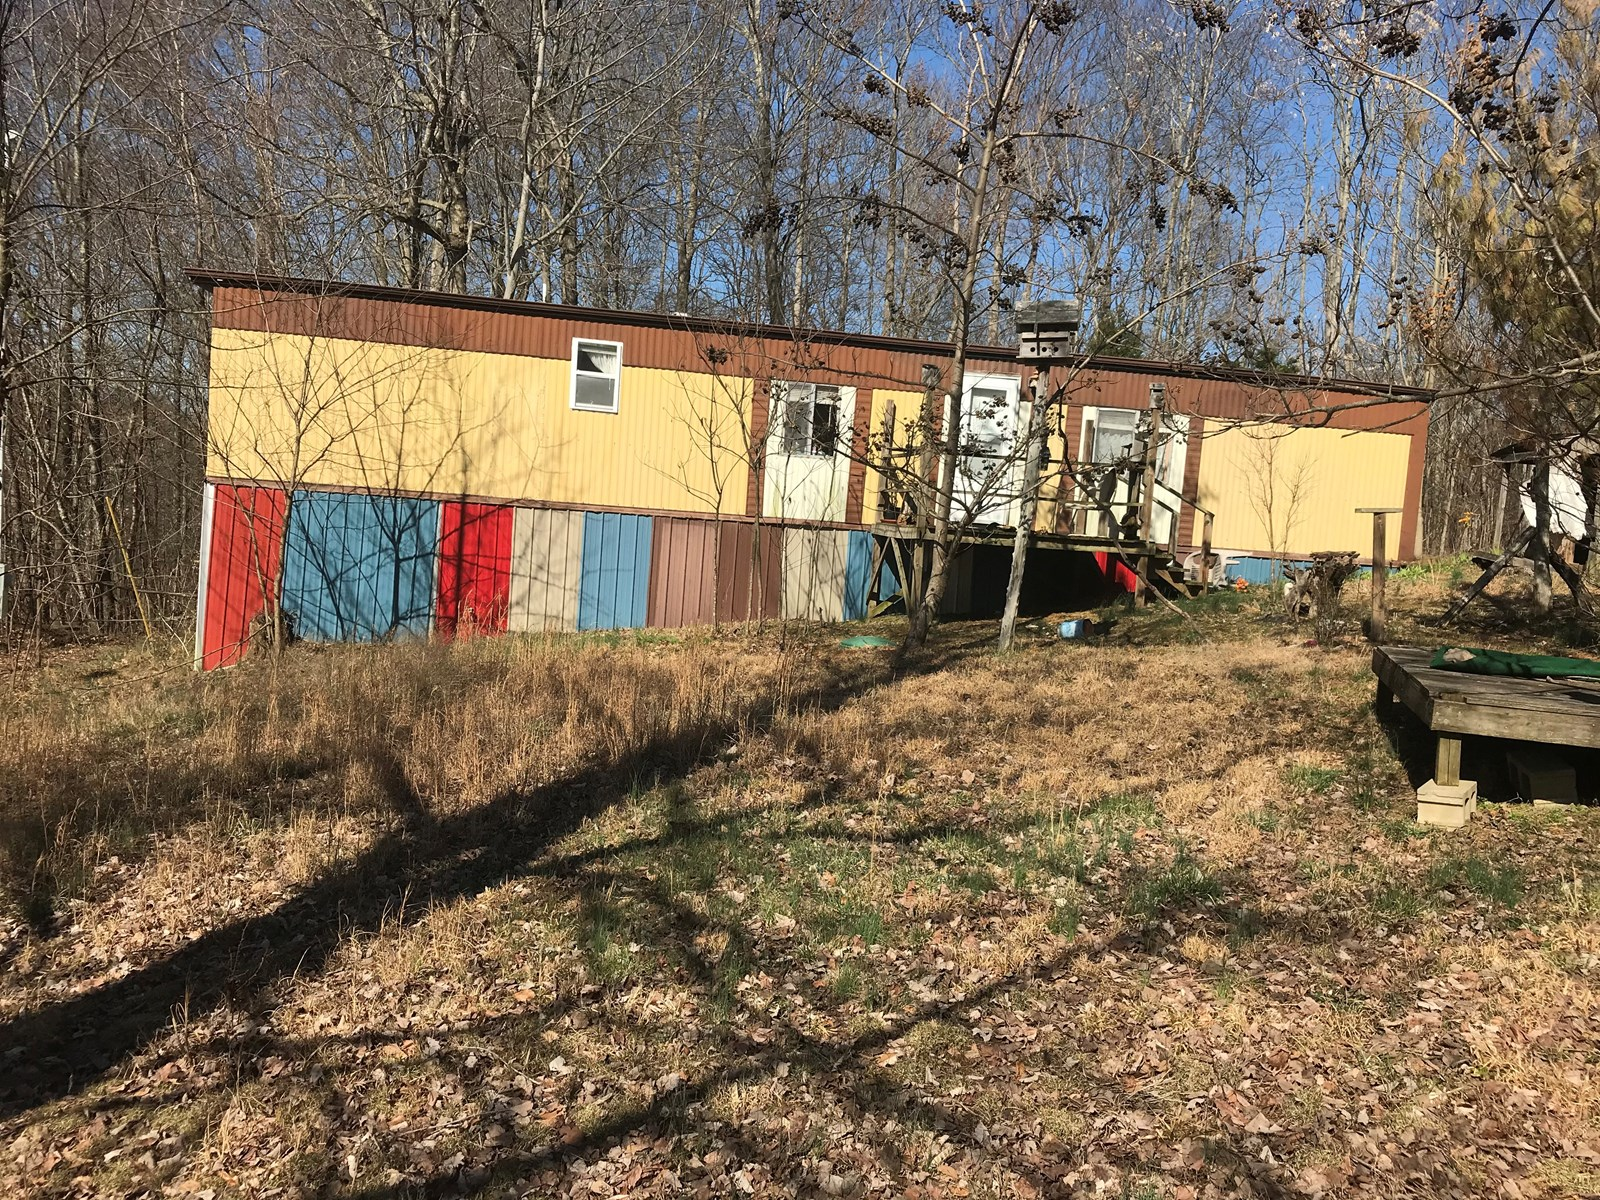 Metcalfe County, 2 Bedroom Mobile Home, 2.09 Acres